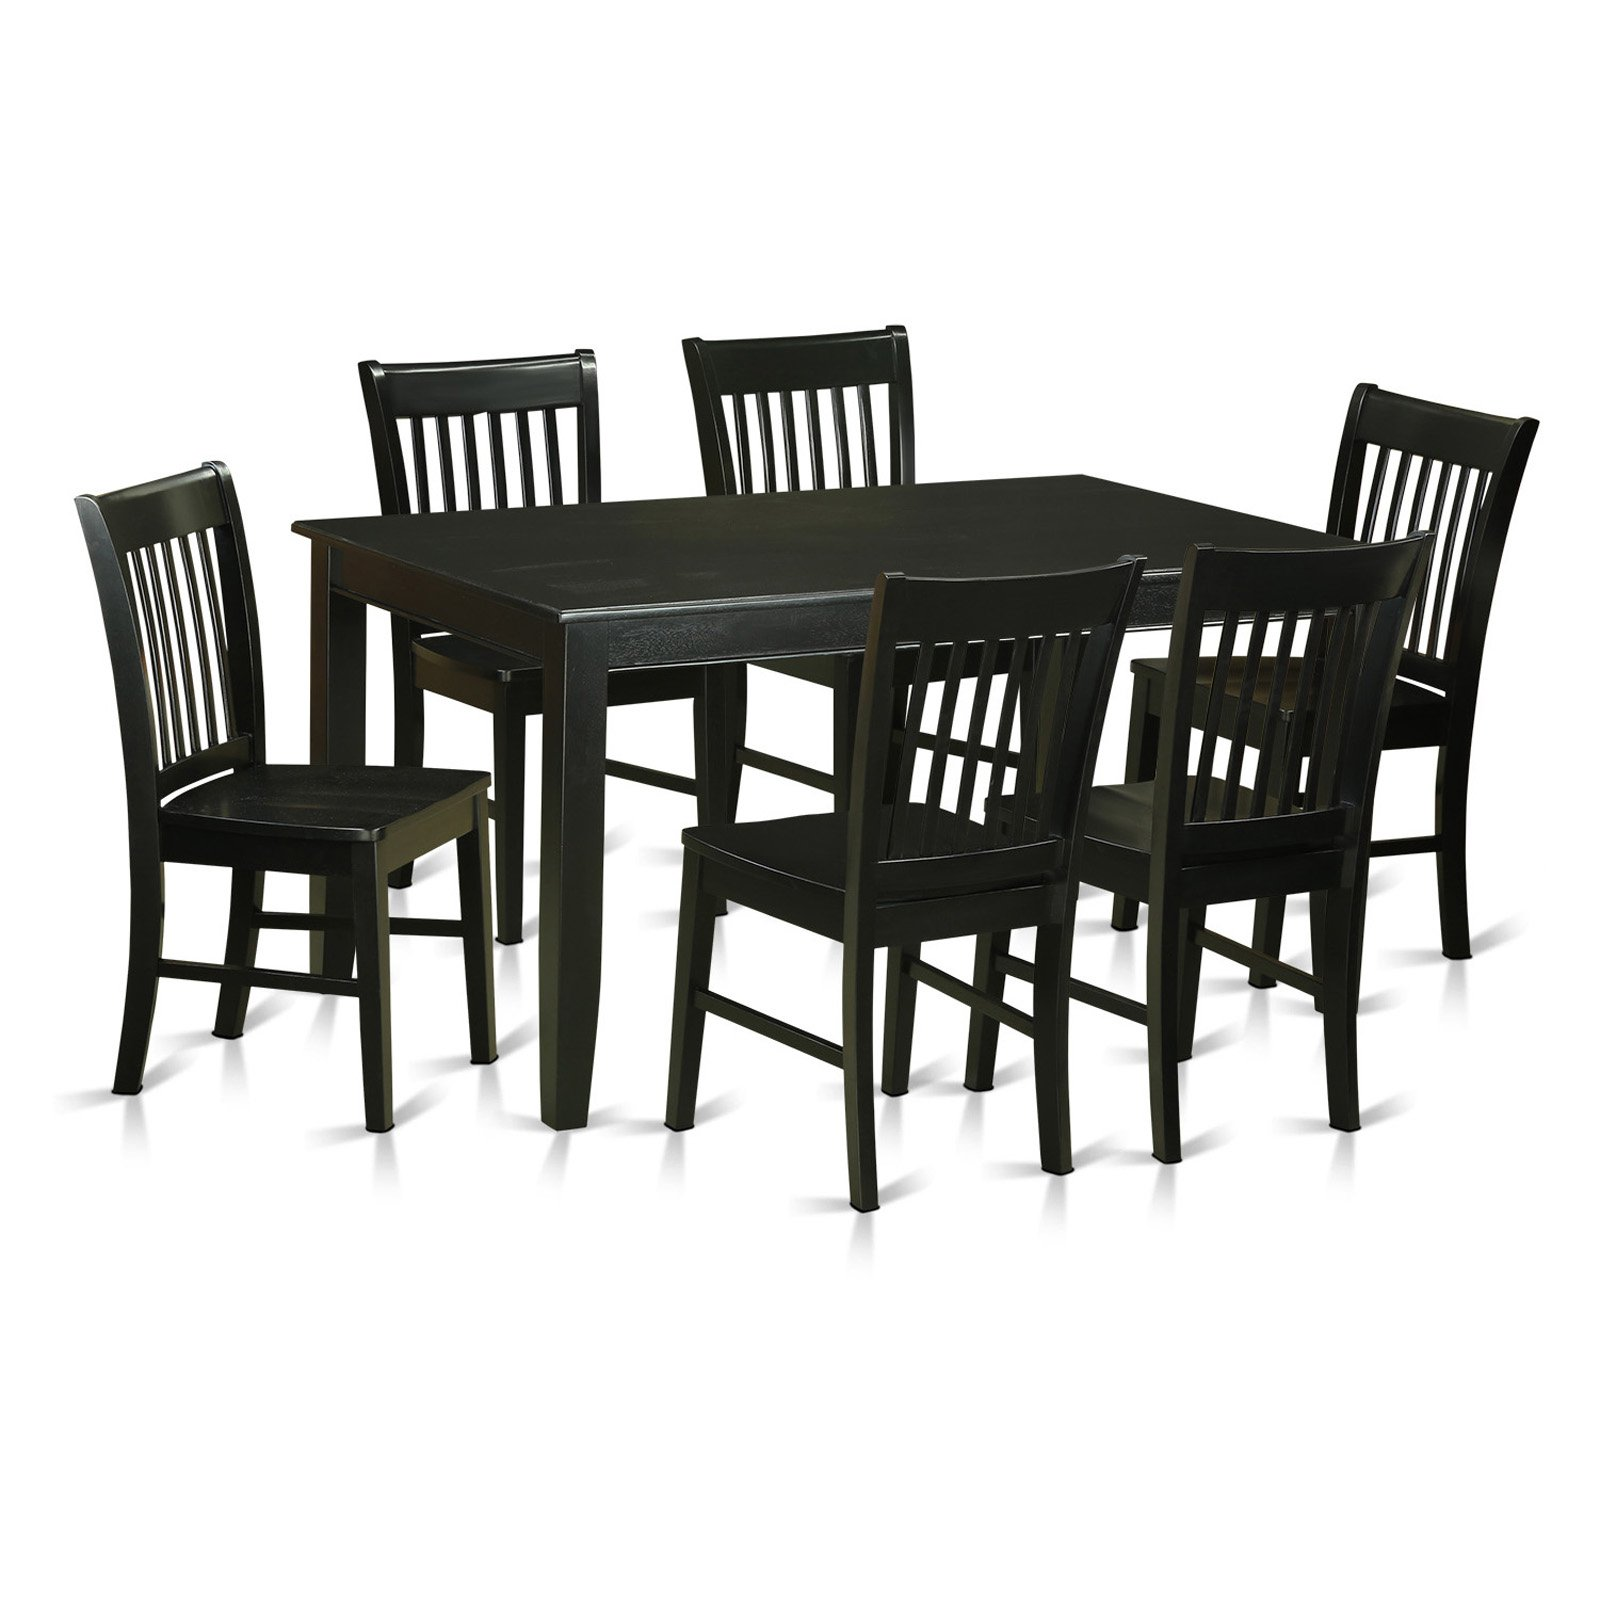 East West Furniture Dudley 7 Piece Rectangular Dining Table Set with Norfolk...